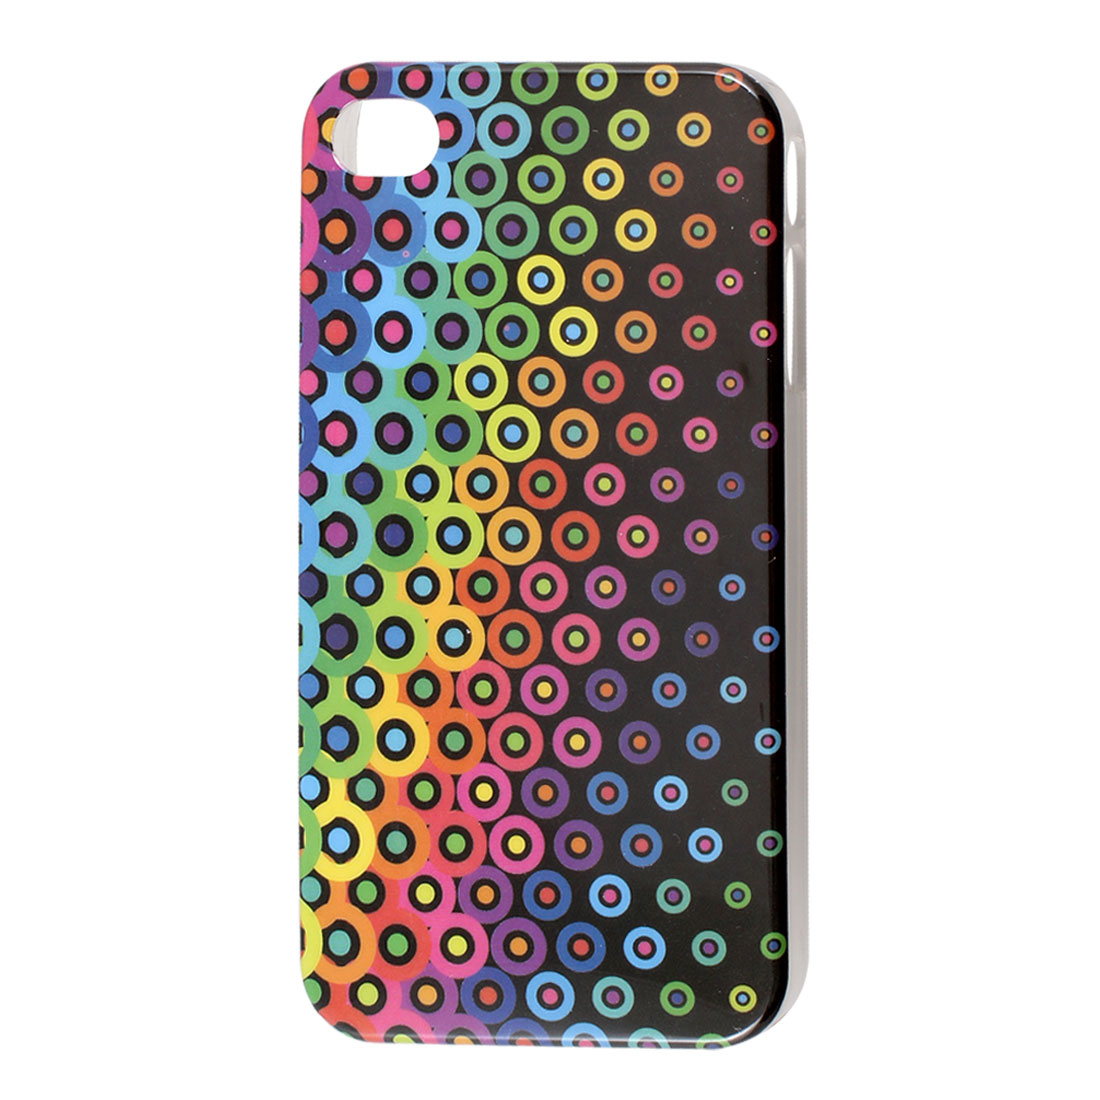 Assorted Color Circle Pattern IMD Hard Back Case Cover for iPhone 4 4G 4S 4GS